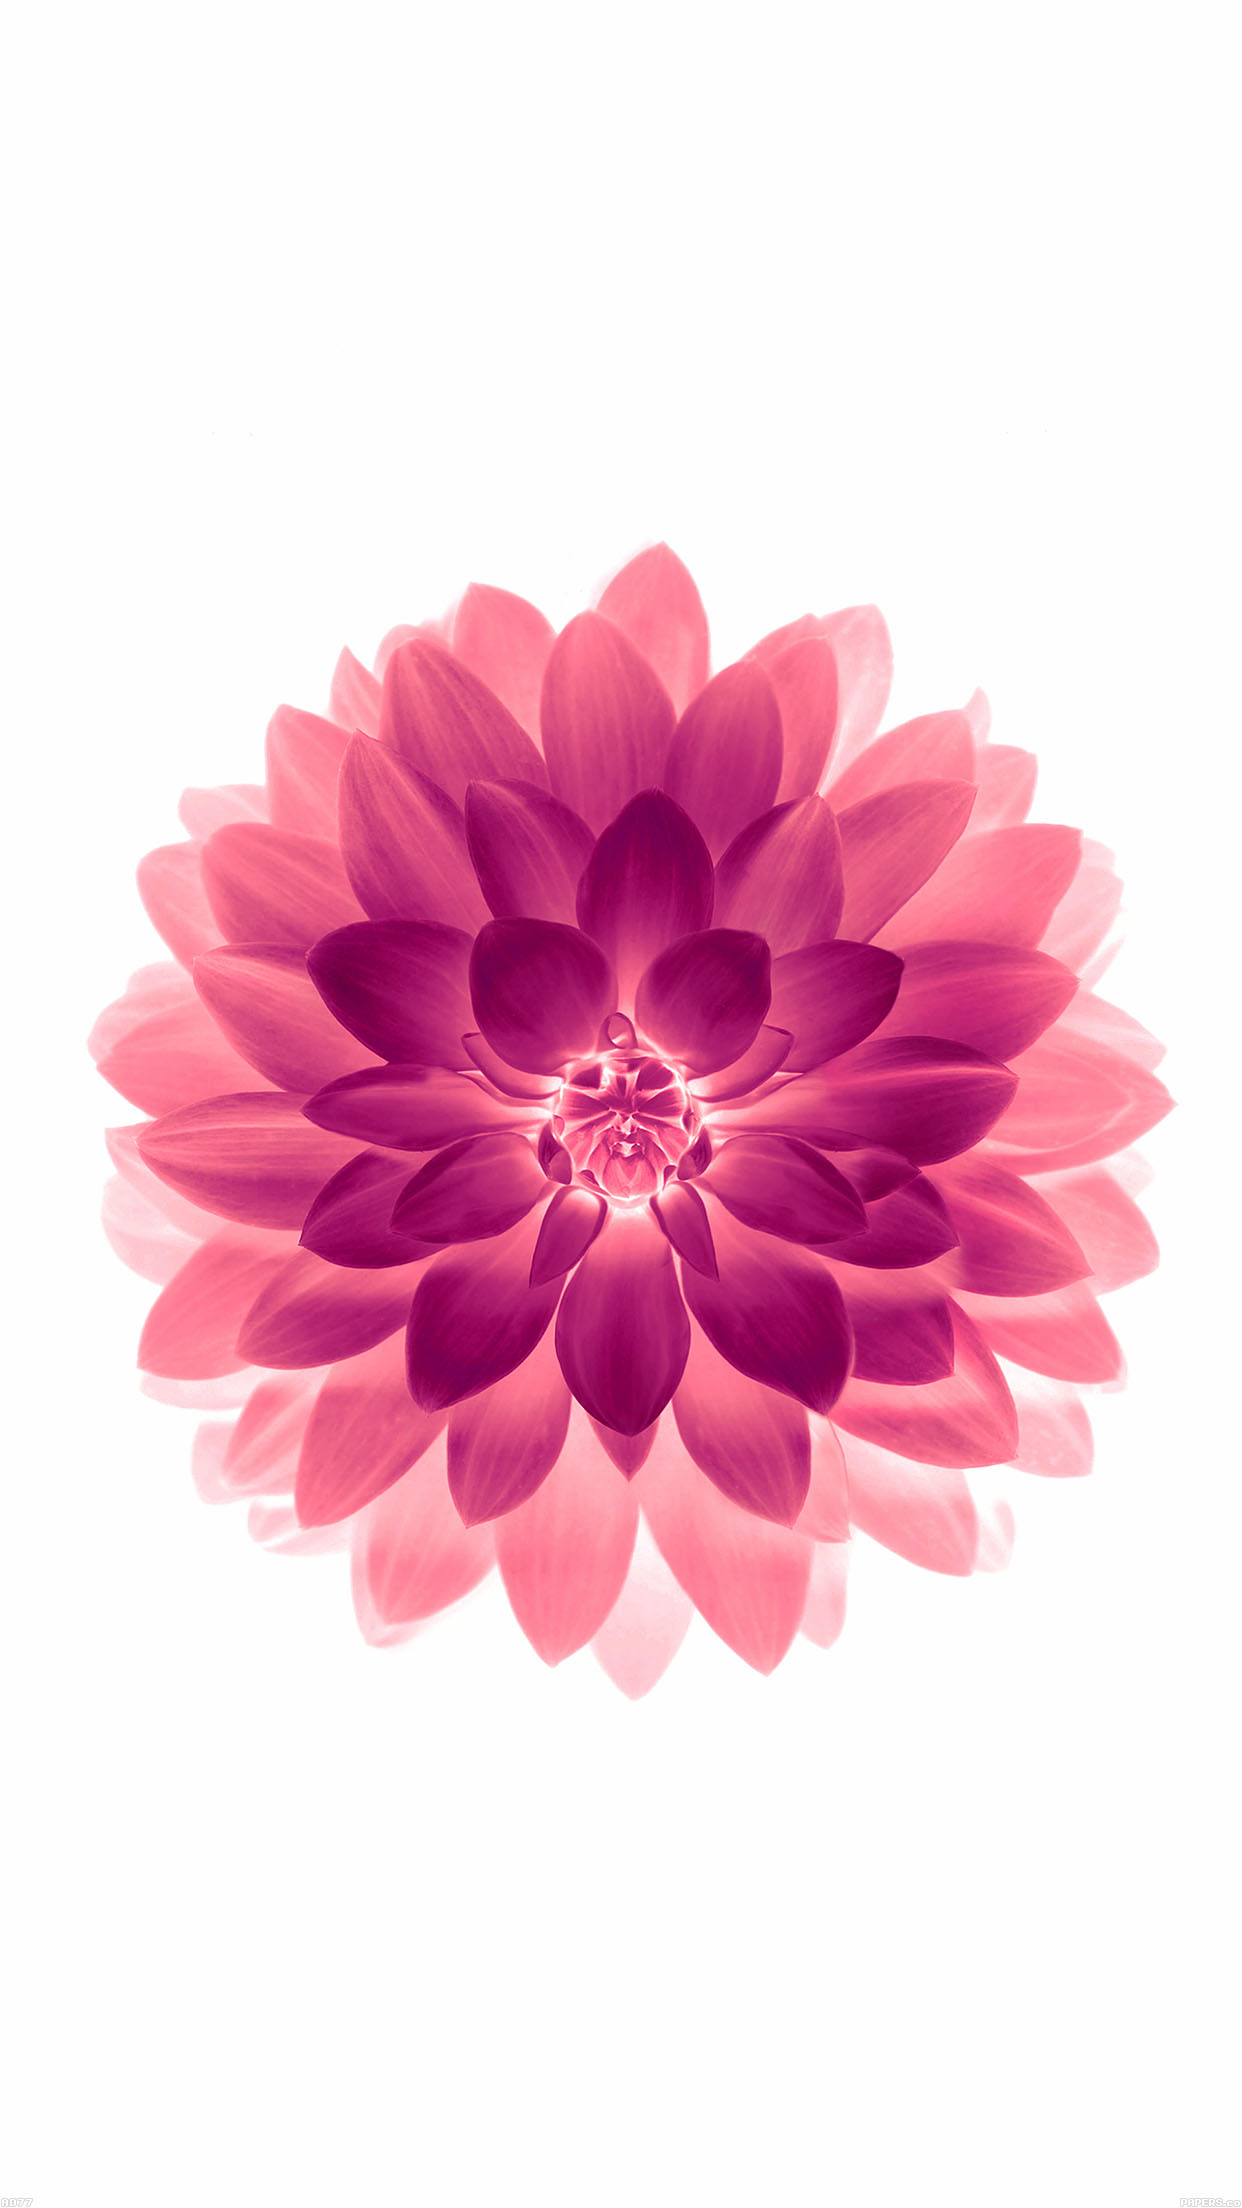 iphone flower wallpaper for iphone x iphonexpapers 1619